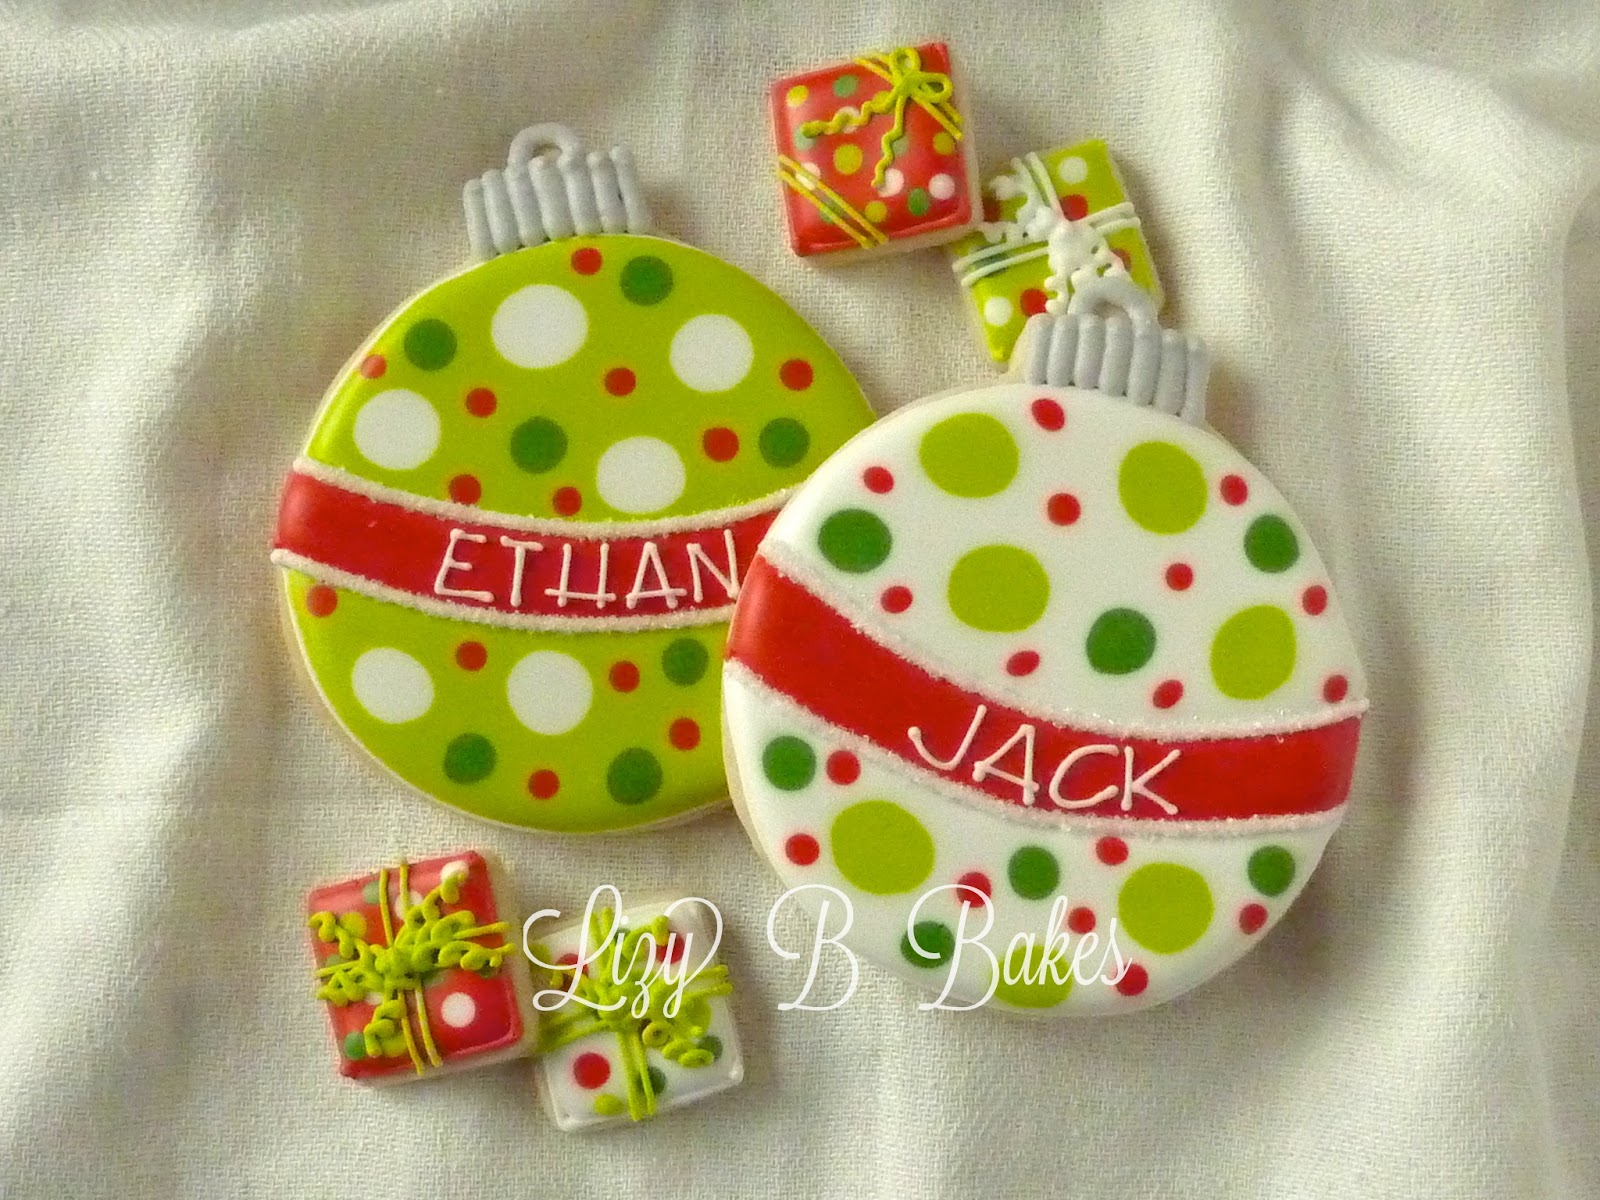 Ornaments with names on them - My Favorite Personalized Christmas Cookies